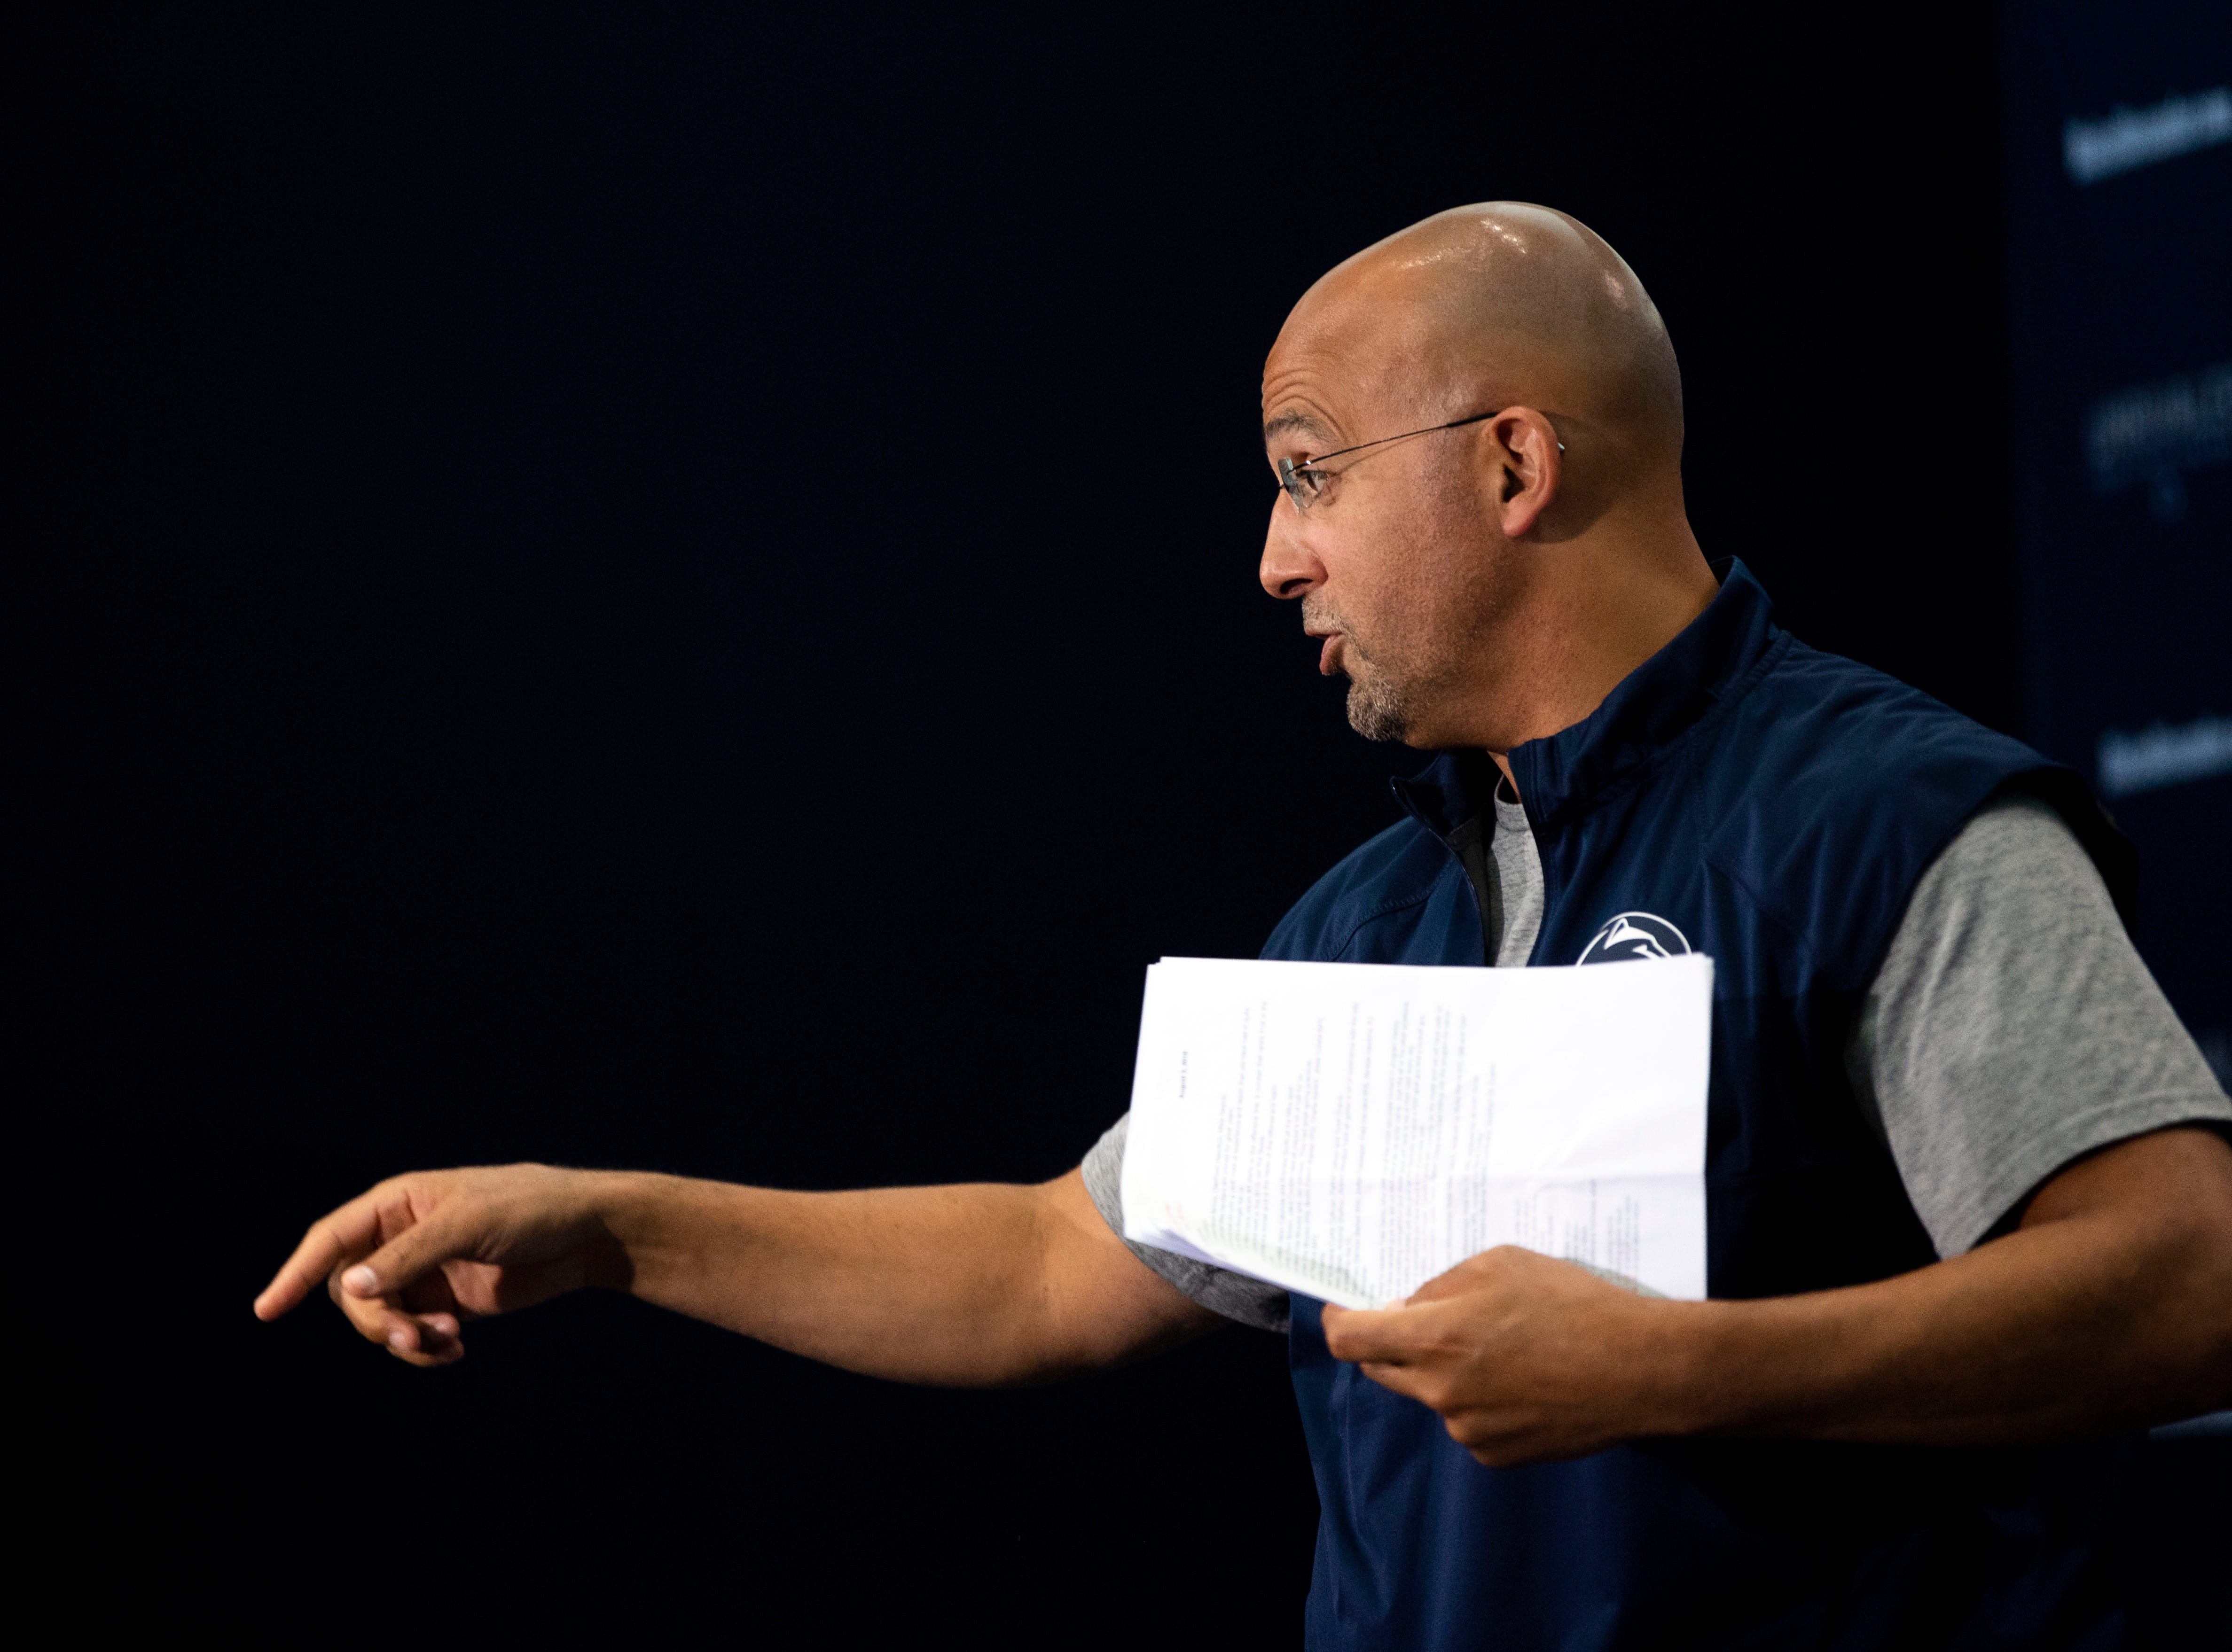 Penn State head coach James Franklin jokes with members of the media while exiting during media day at Beaver Stadium on Saturday, August 4, 2018.